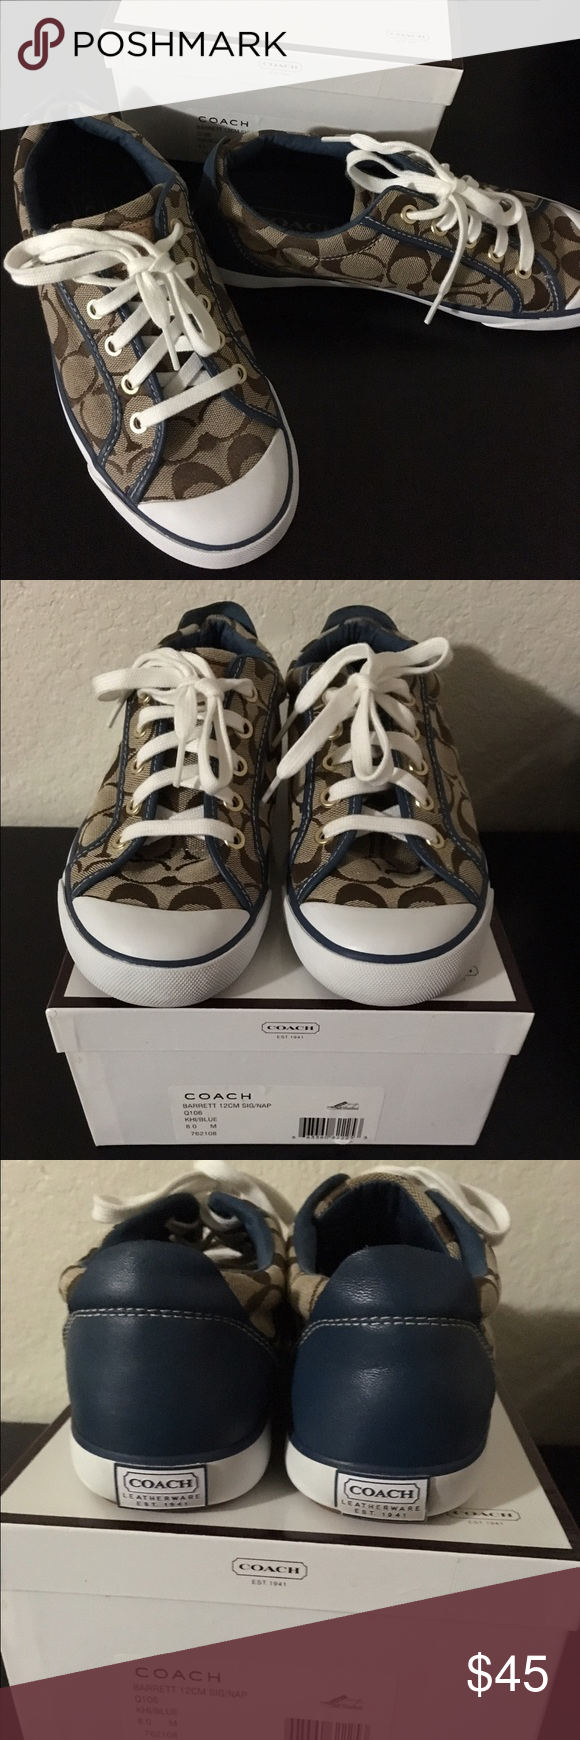 Coach Khaki/Blue Sneakers Excellent like new condition hardly worn. The photos speaks for it's self how good these Coach shoes are. Too small for me. True to size. 🚫No Trades 🚫No Holds Coach Shoes Sneakers